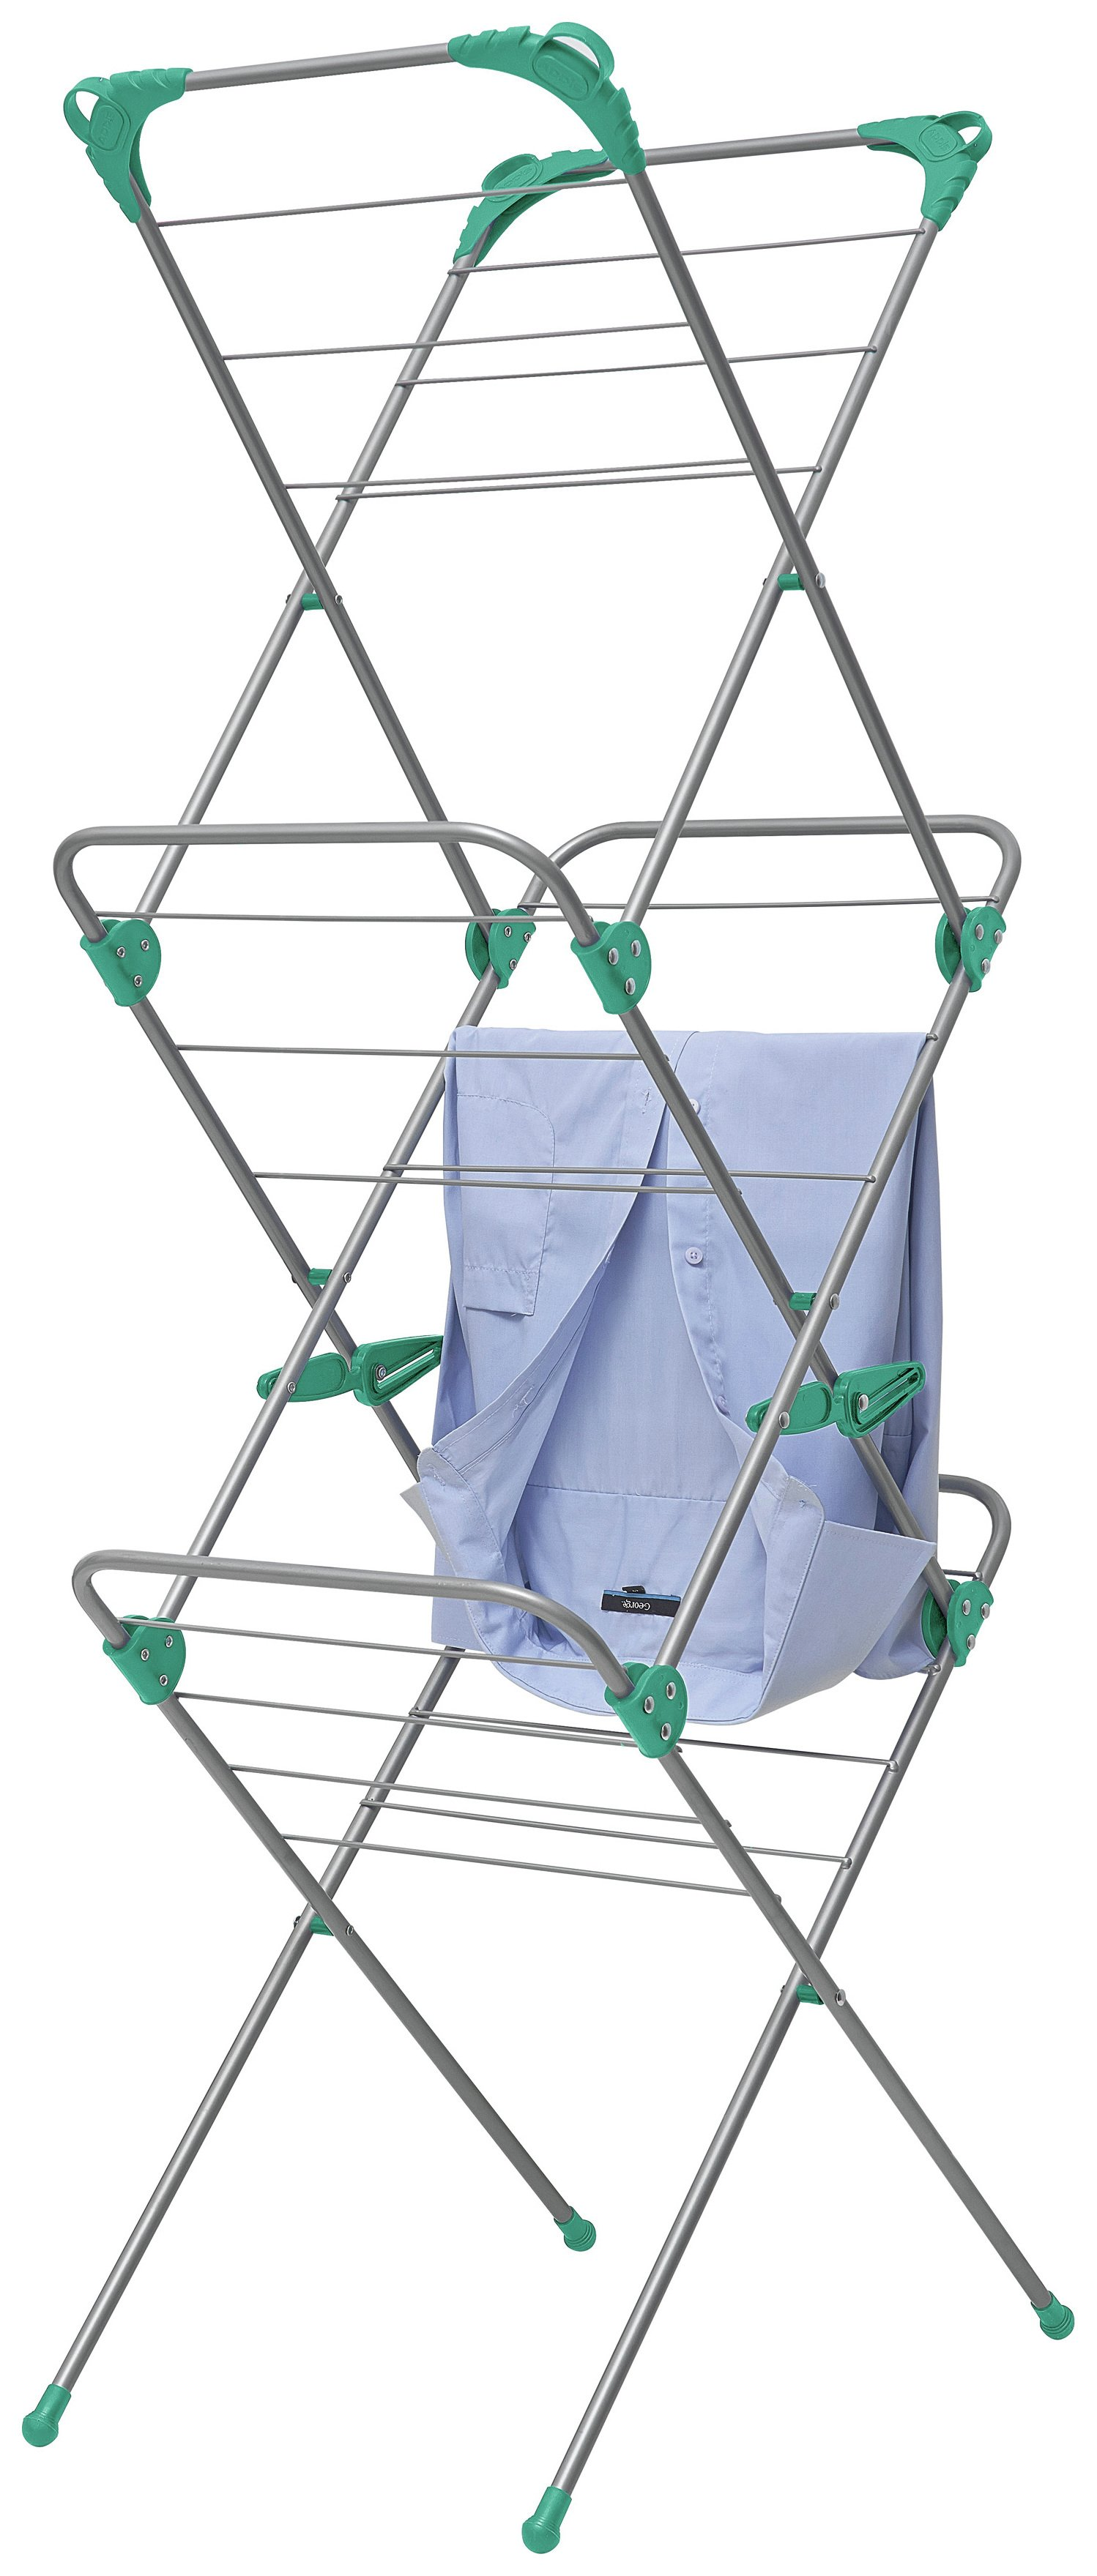 Image of Addis 10m Slimline 3 Tier Airer